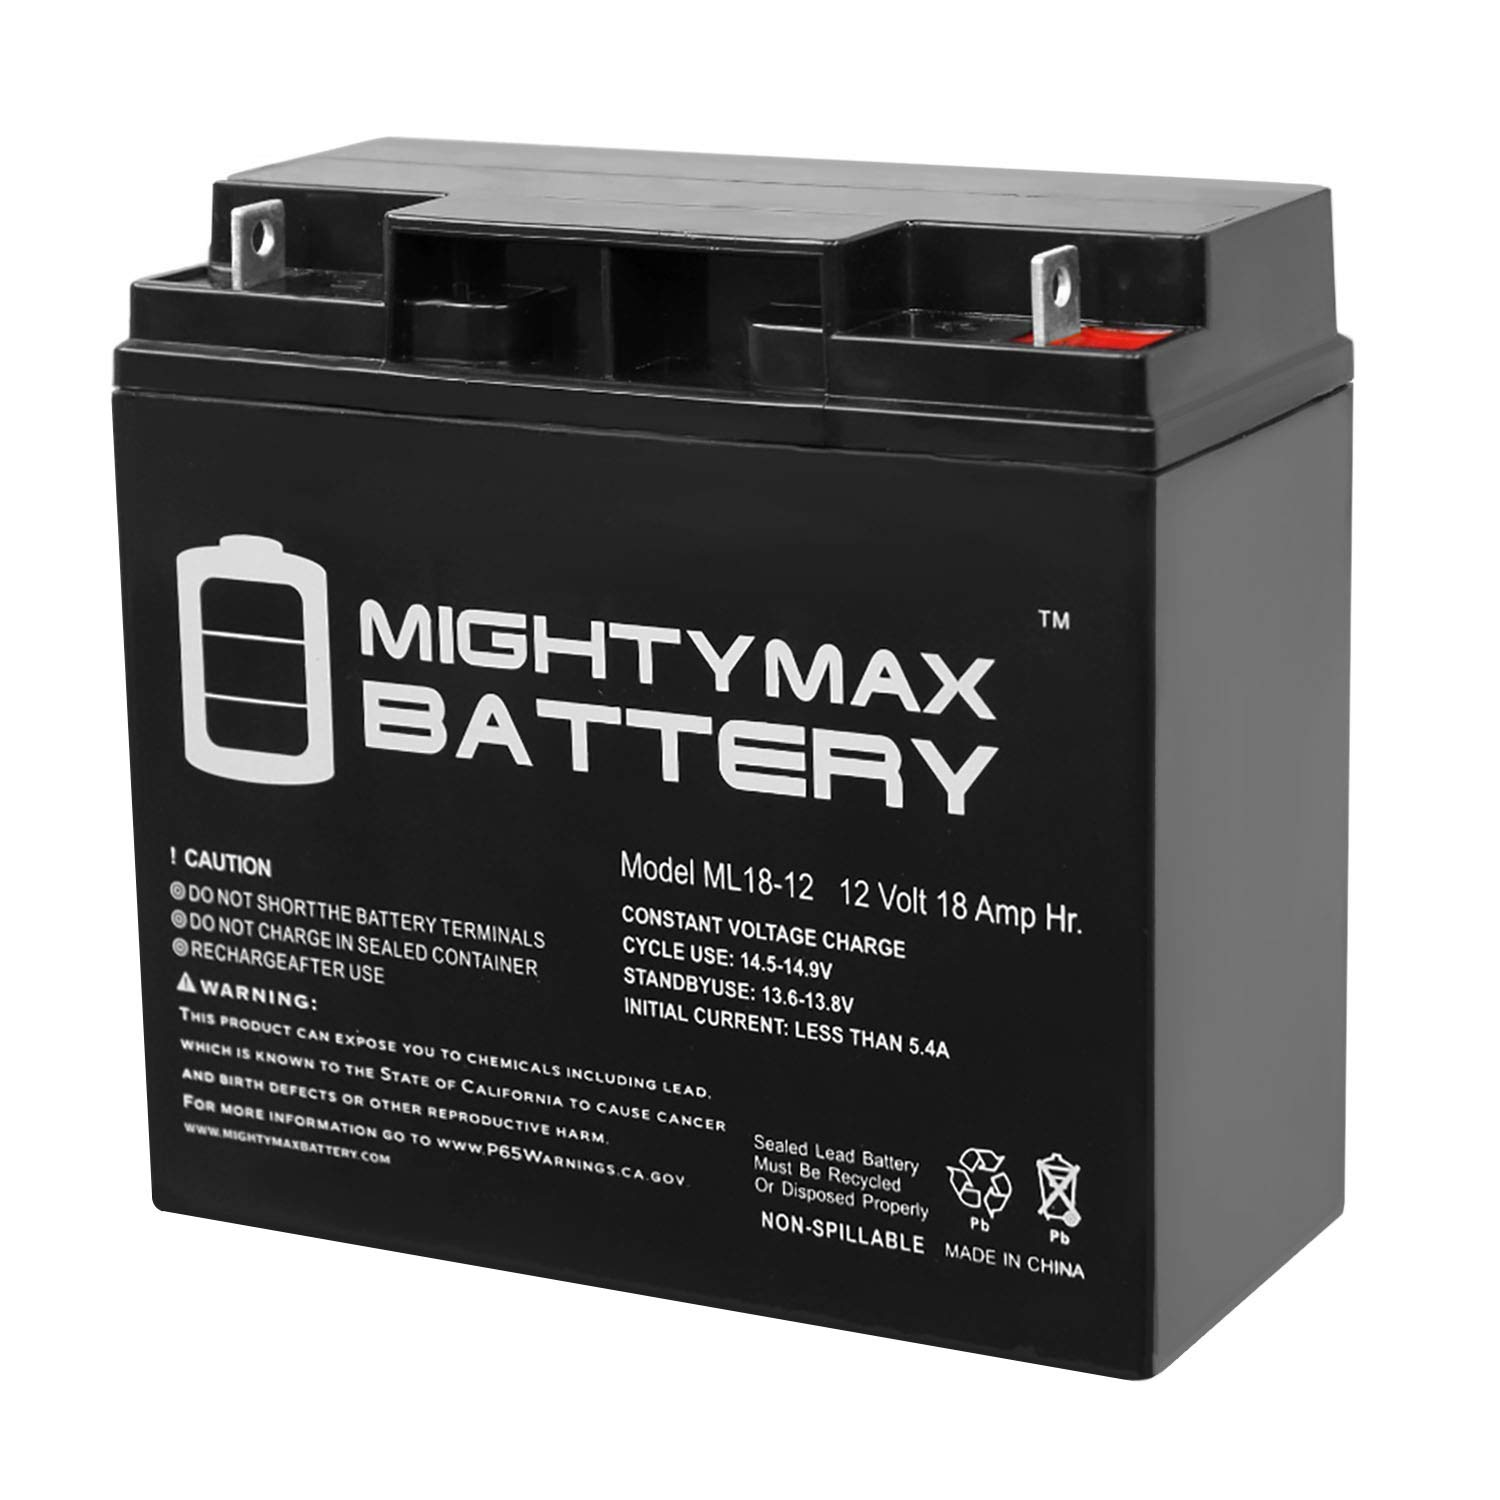 Mighty Max Battery ML18 12 Rechargeable